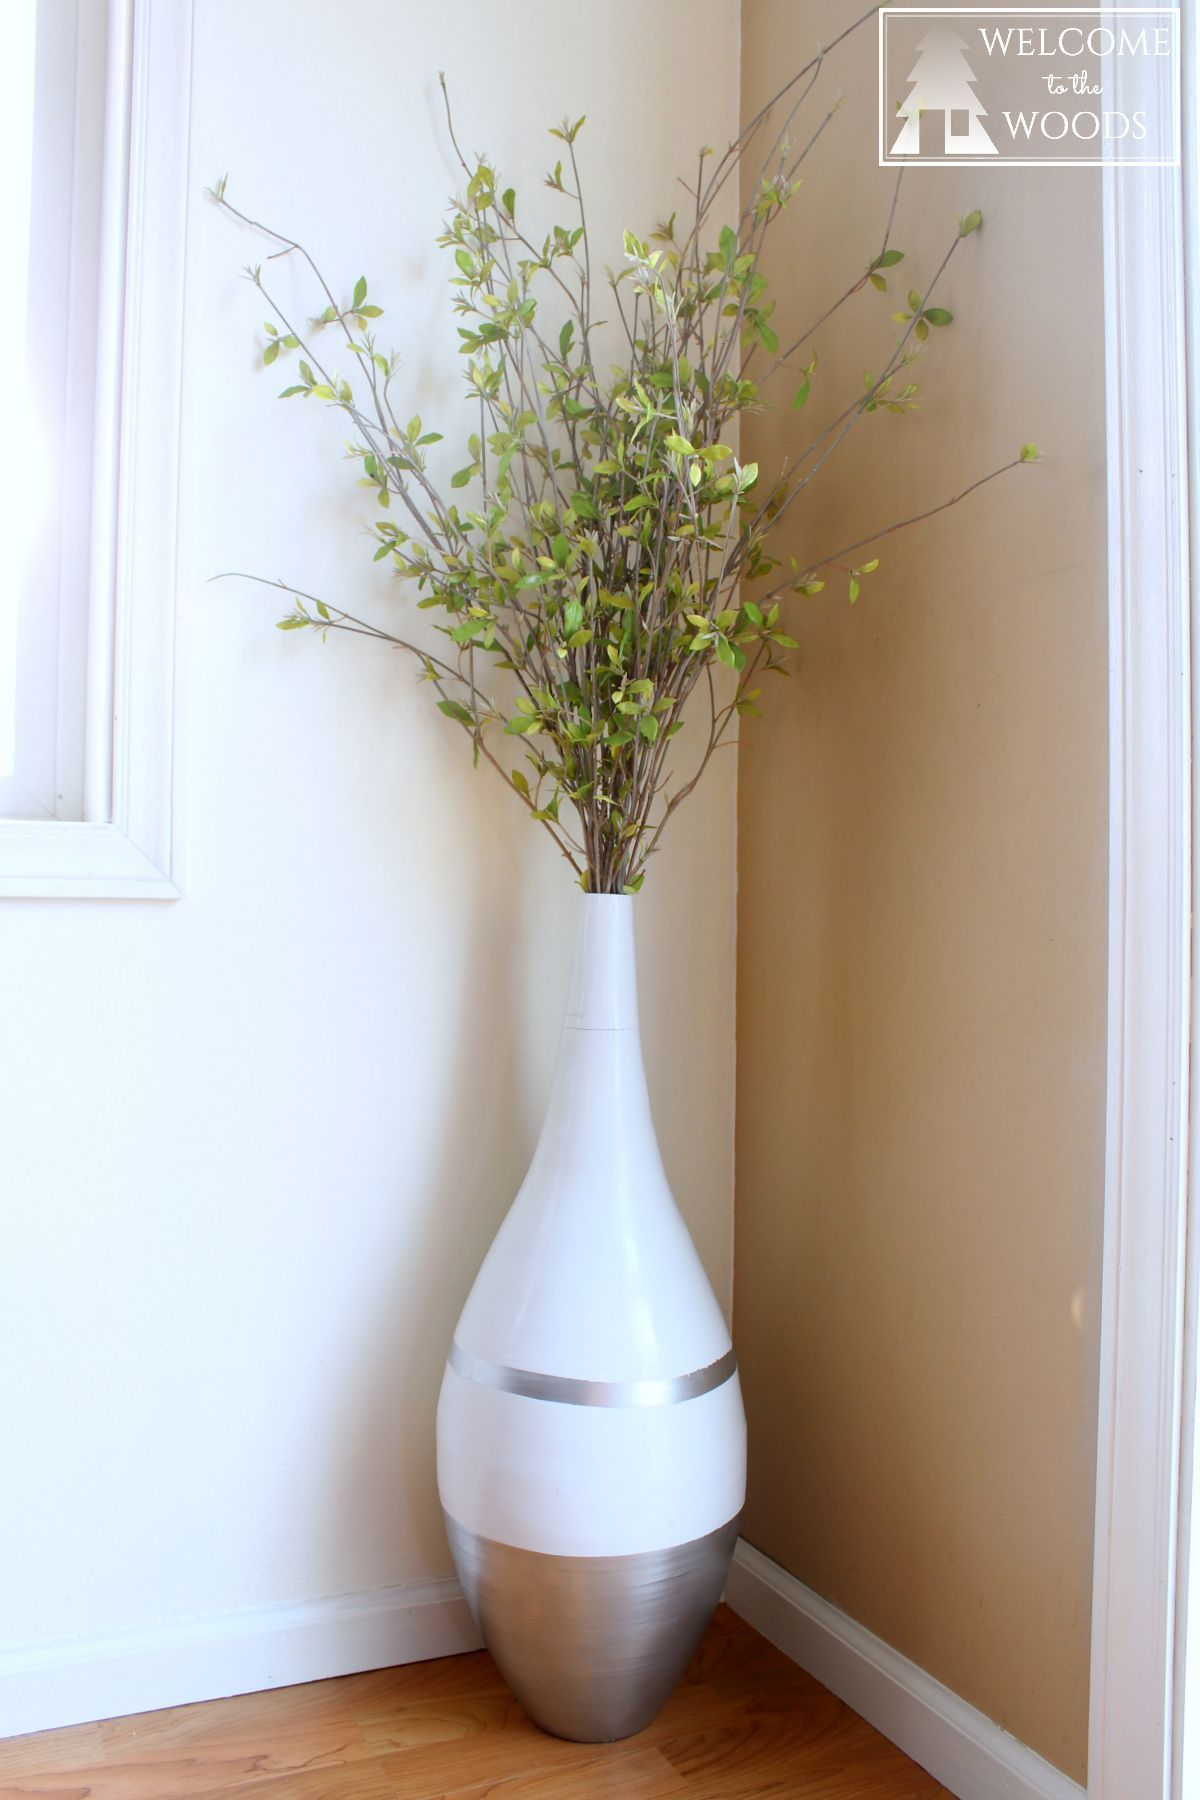 Vase Refresh Simple Modern White And Silver Dipped Large Vase I Painted The Bamboo Vase With Frogtape And Spray Large Vases Decor Floor Vase Decor Vases Decor